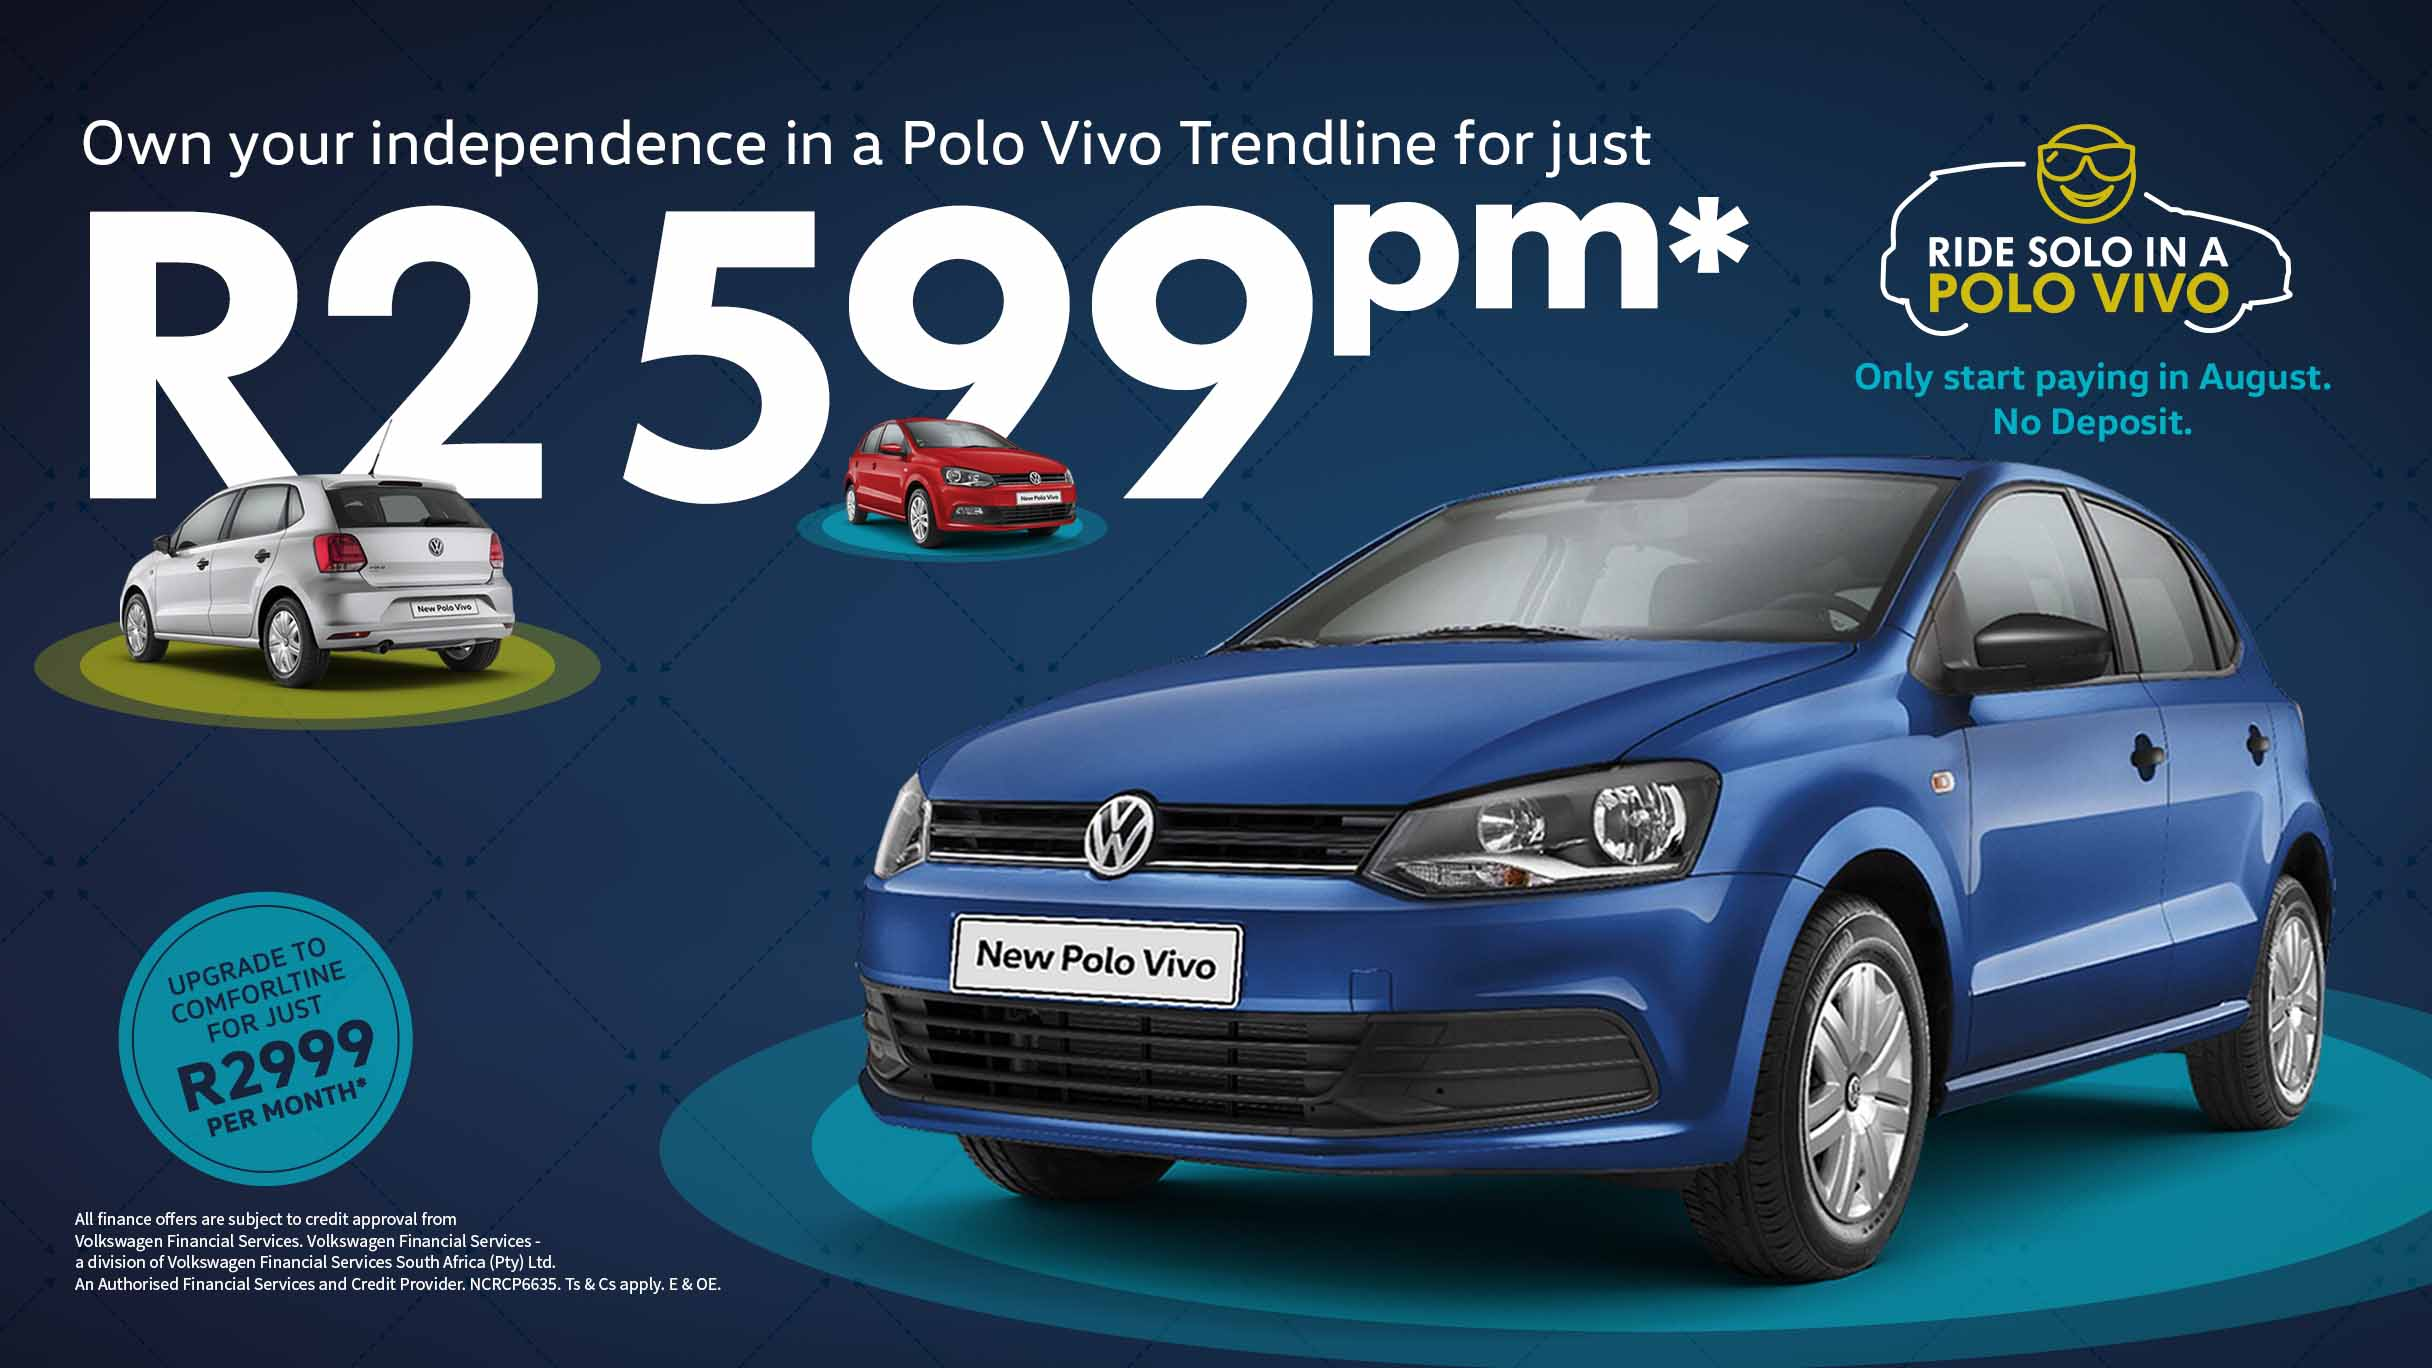 Polo Vivo car offer